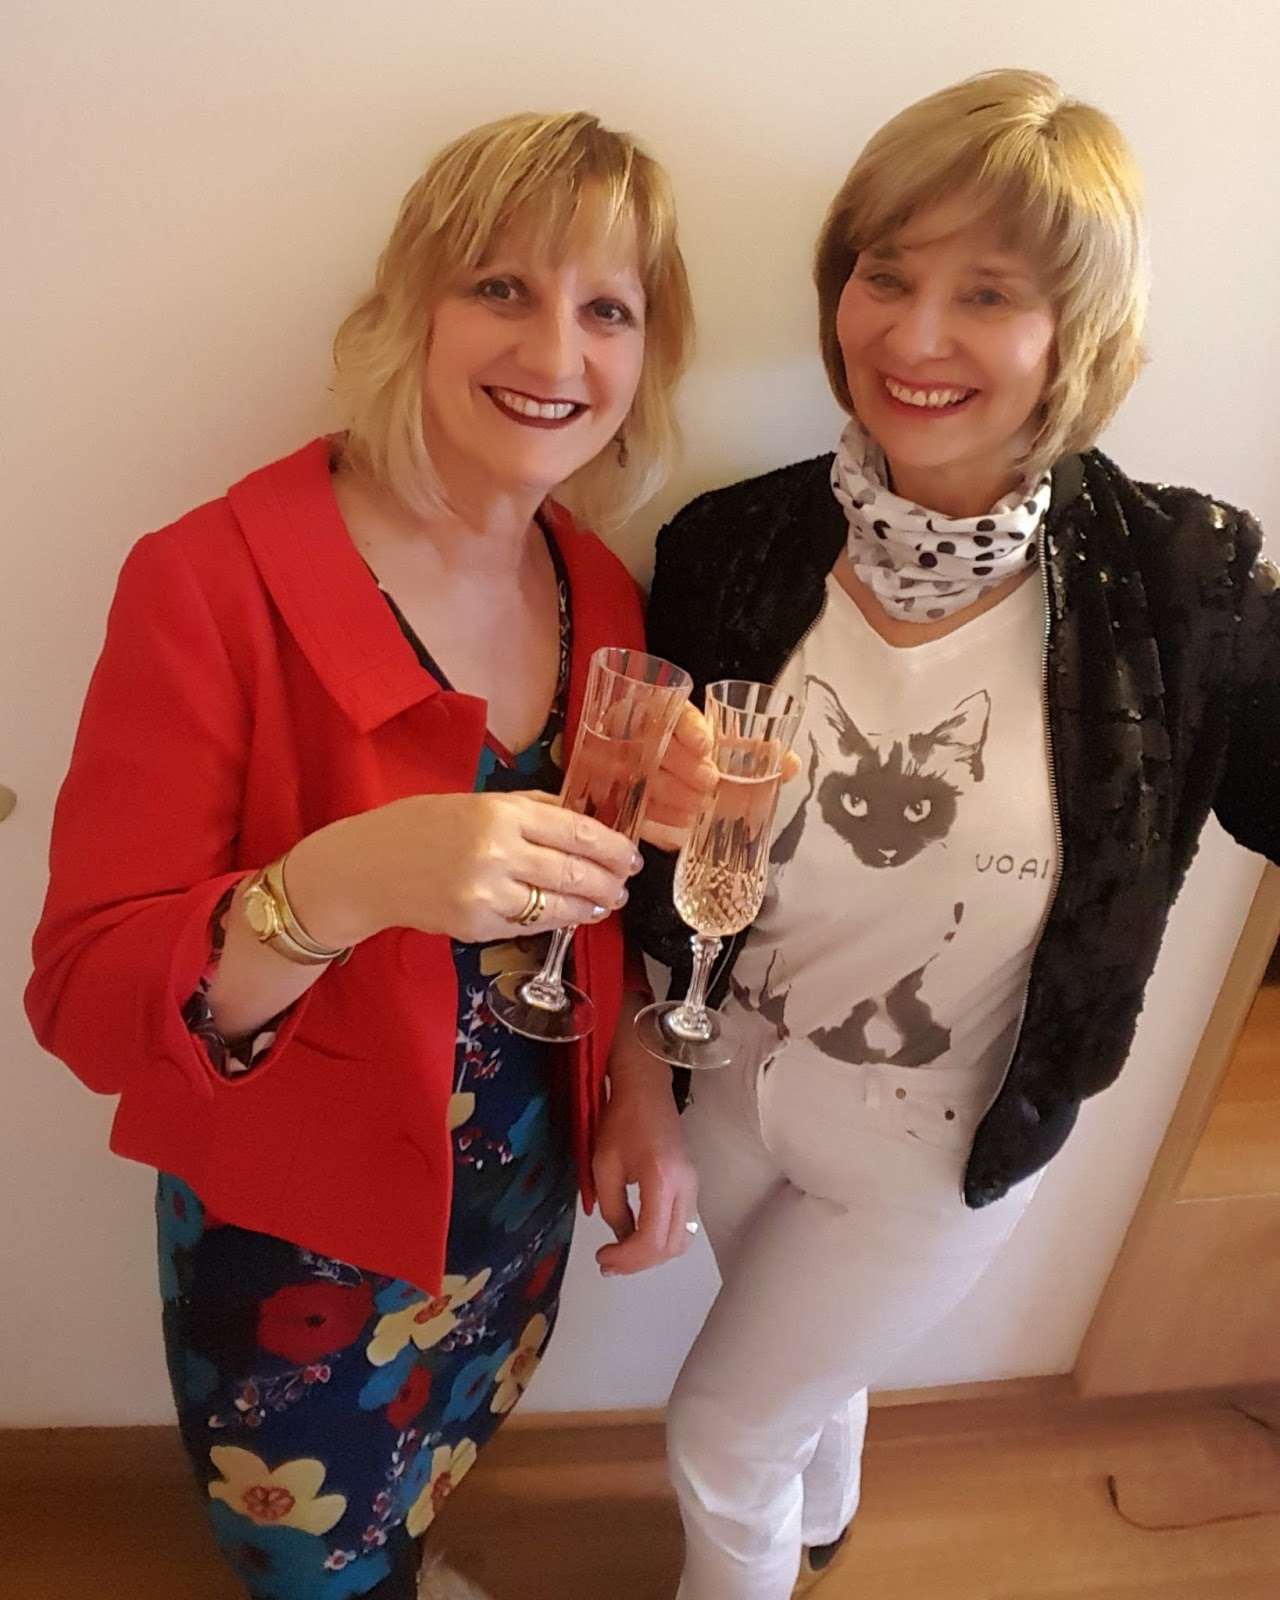 Bloggers and former flatmates Maddie Grigg and Gail Hanlon raise a glass before the Holy Holy Ziggy Stardust gig in London